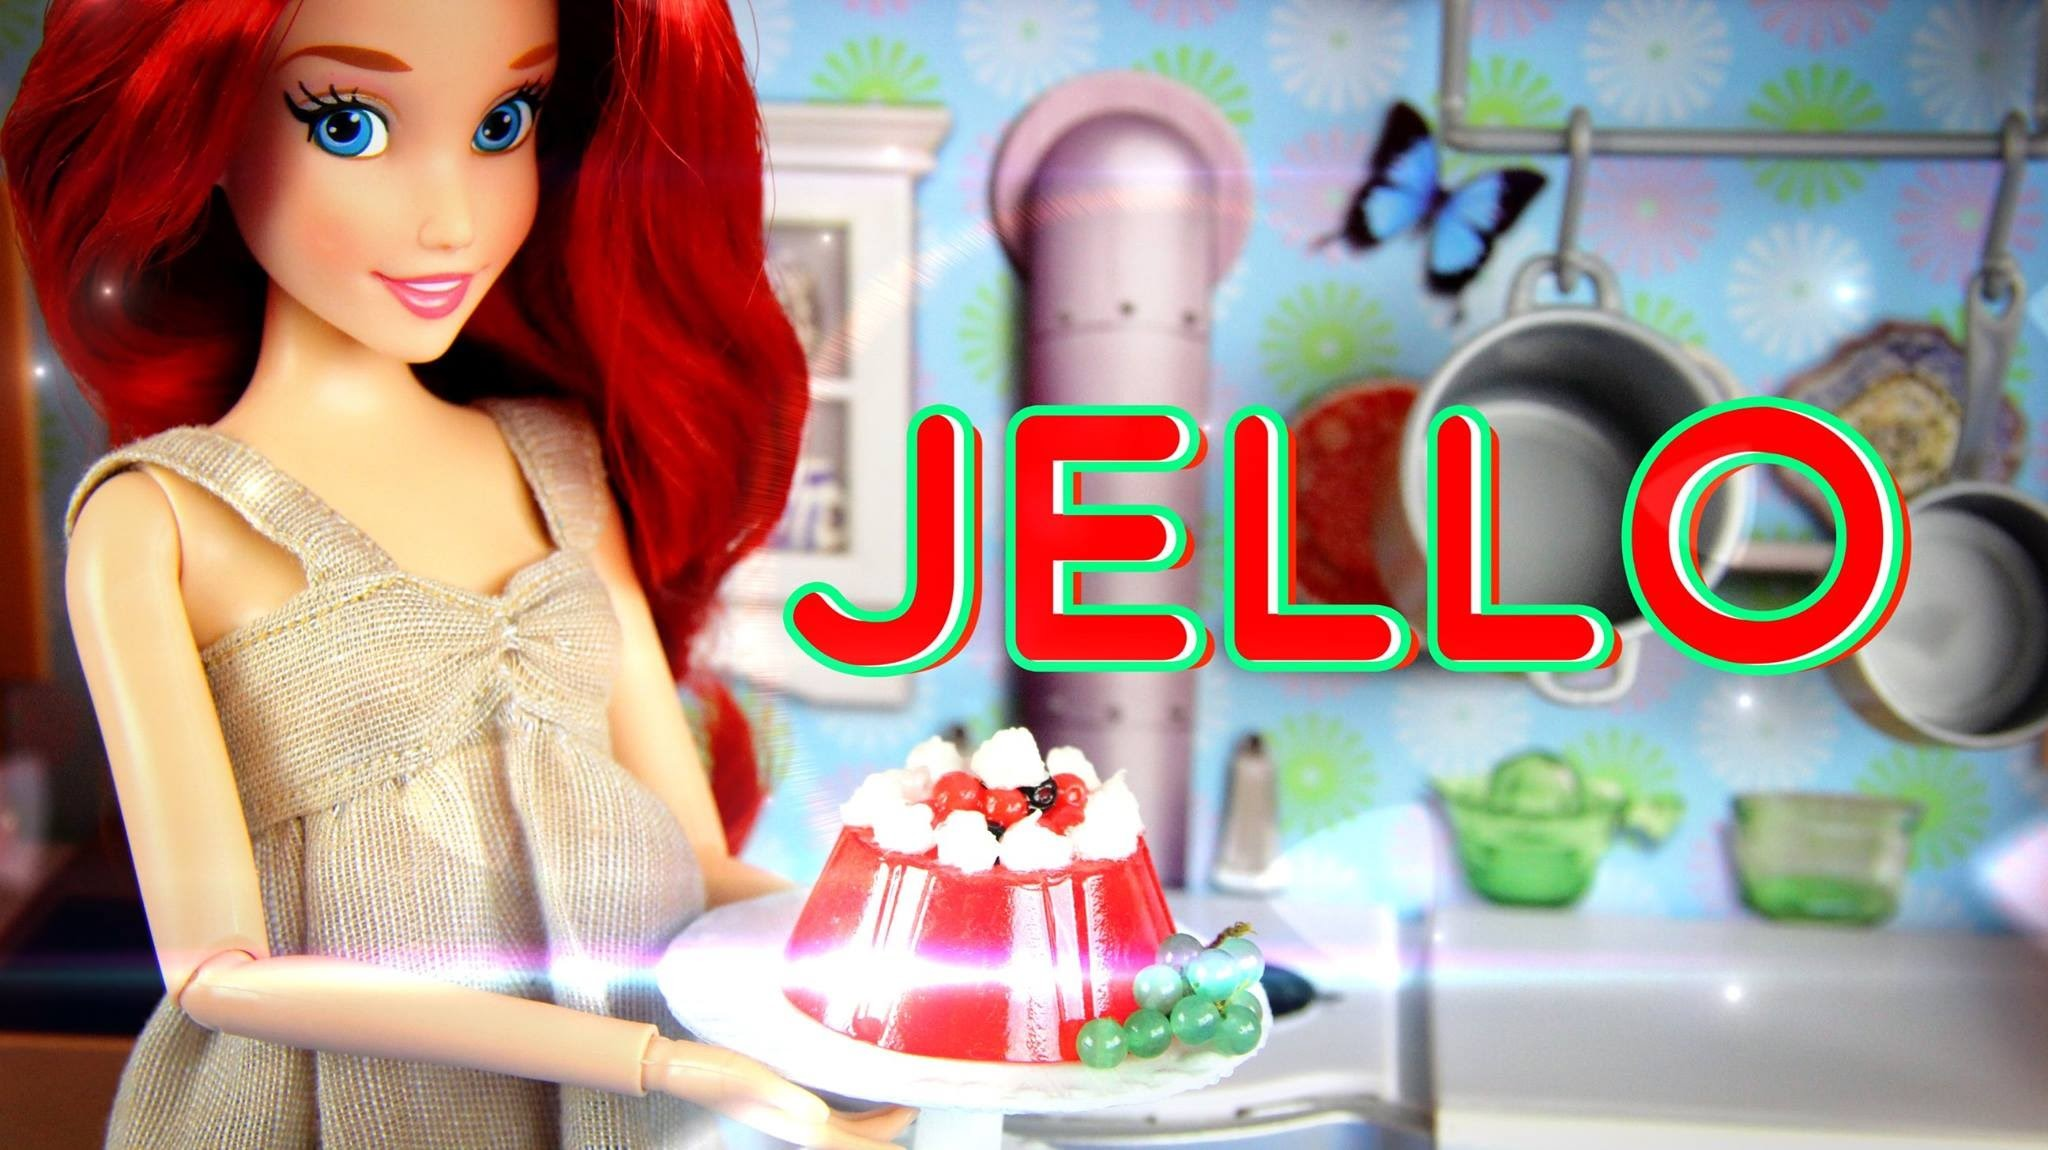 How to Make a Doll Jello Mold - Doll Crafts